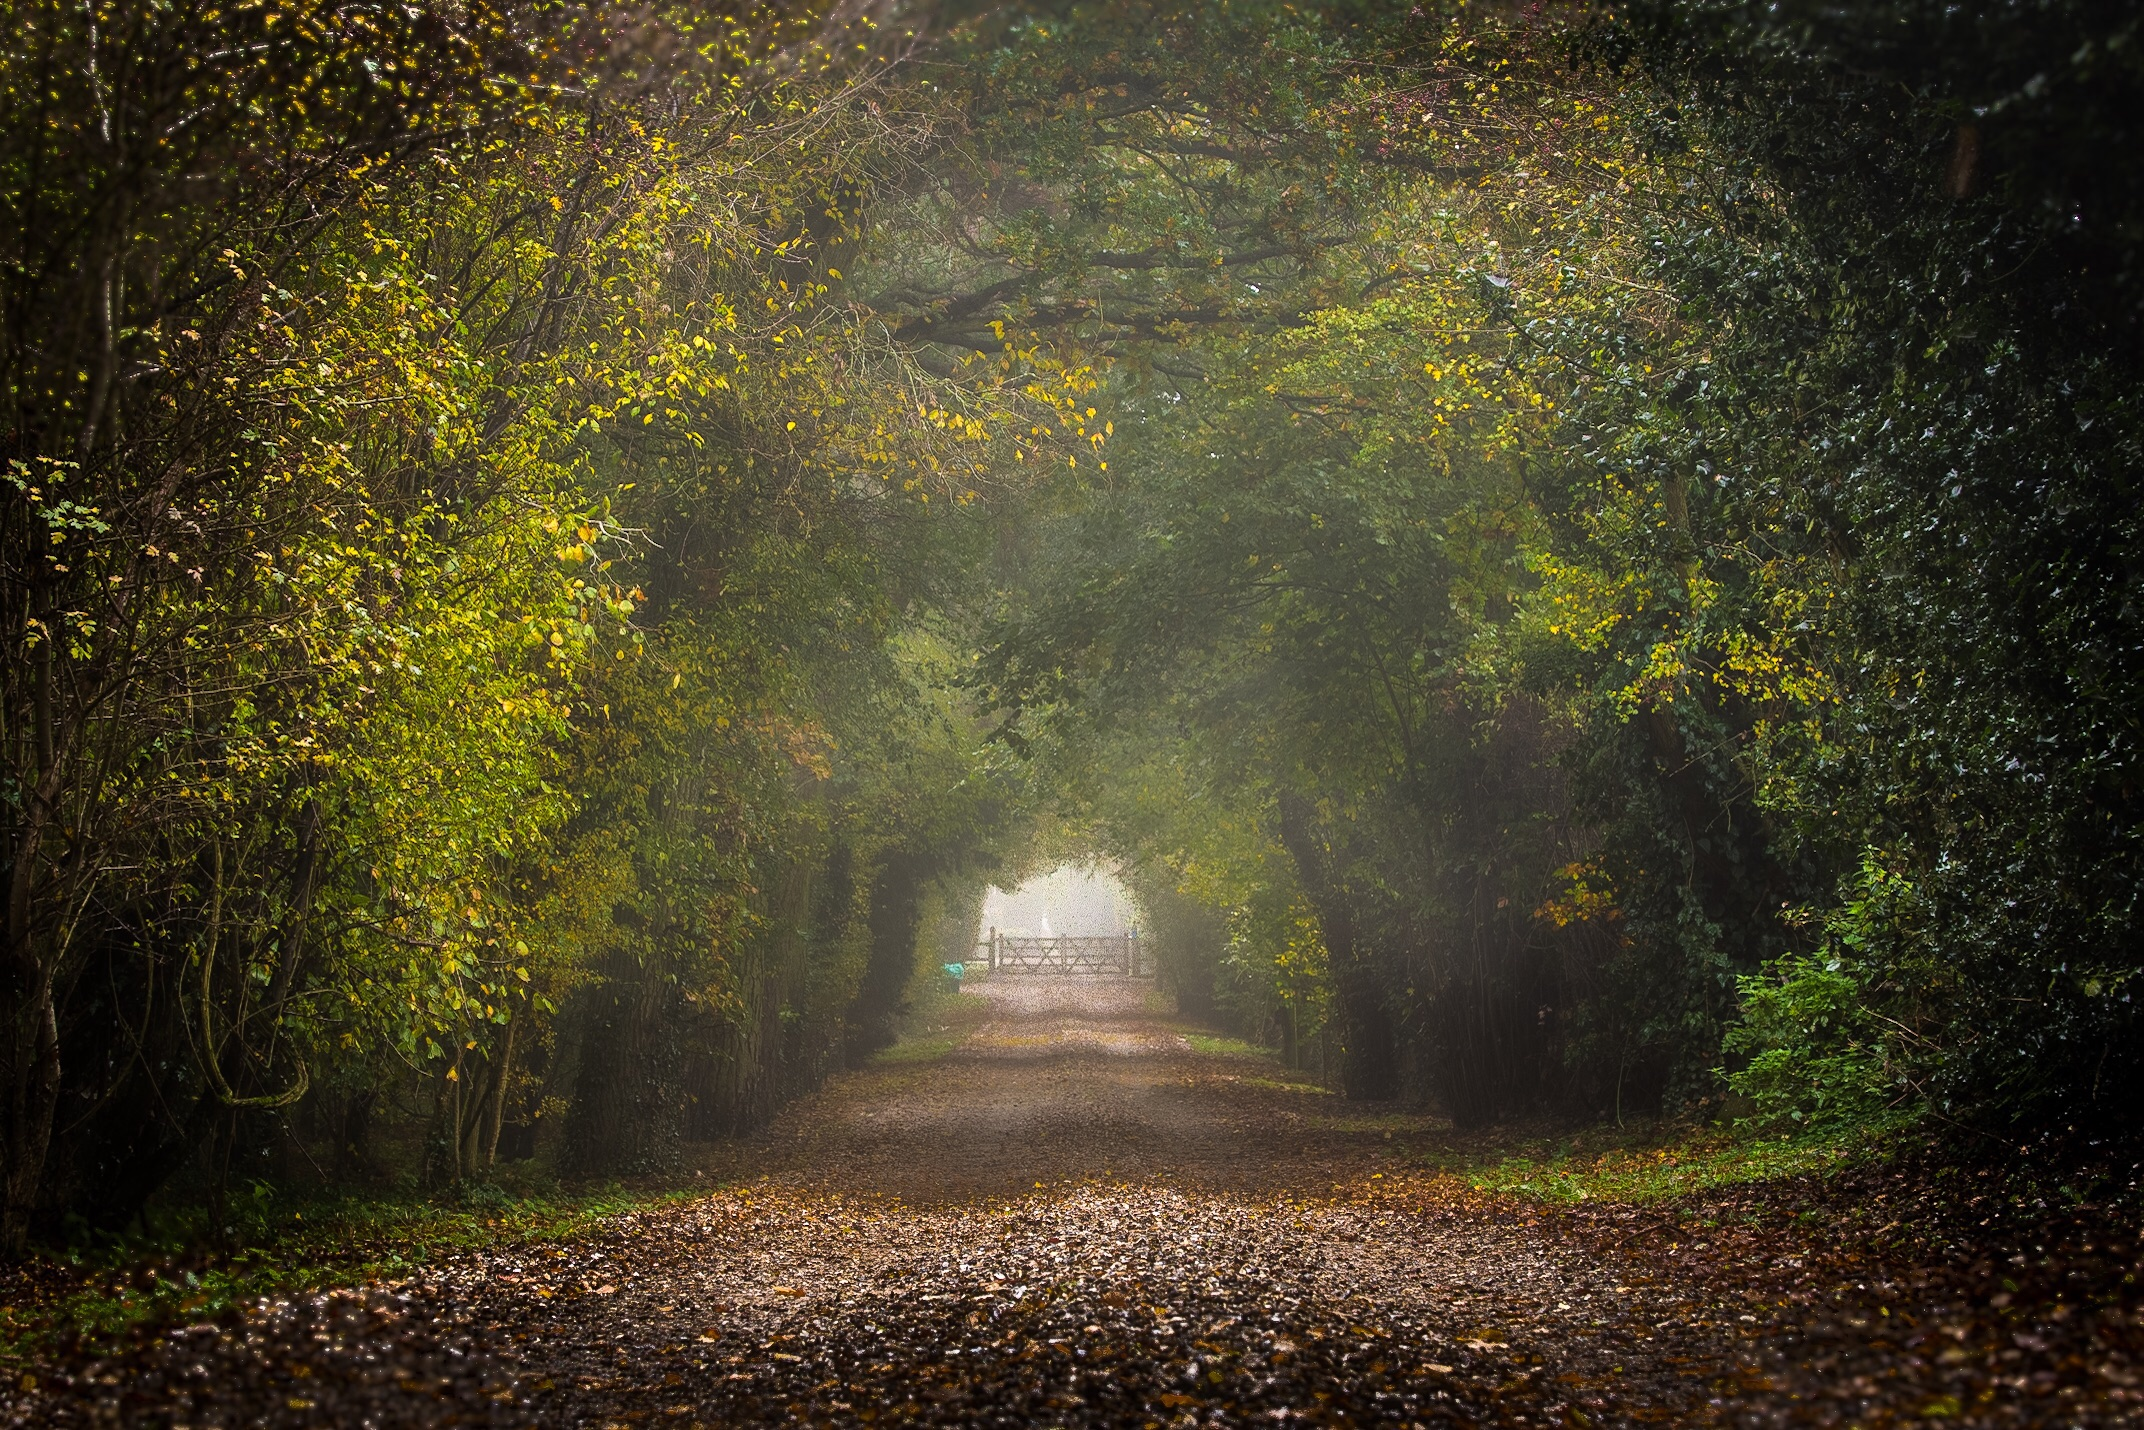 Road to gate. Dorset Photography by Rick McEvoy